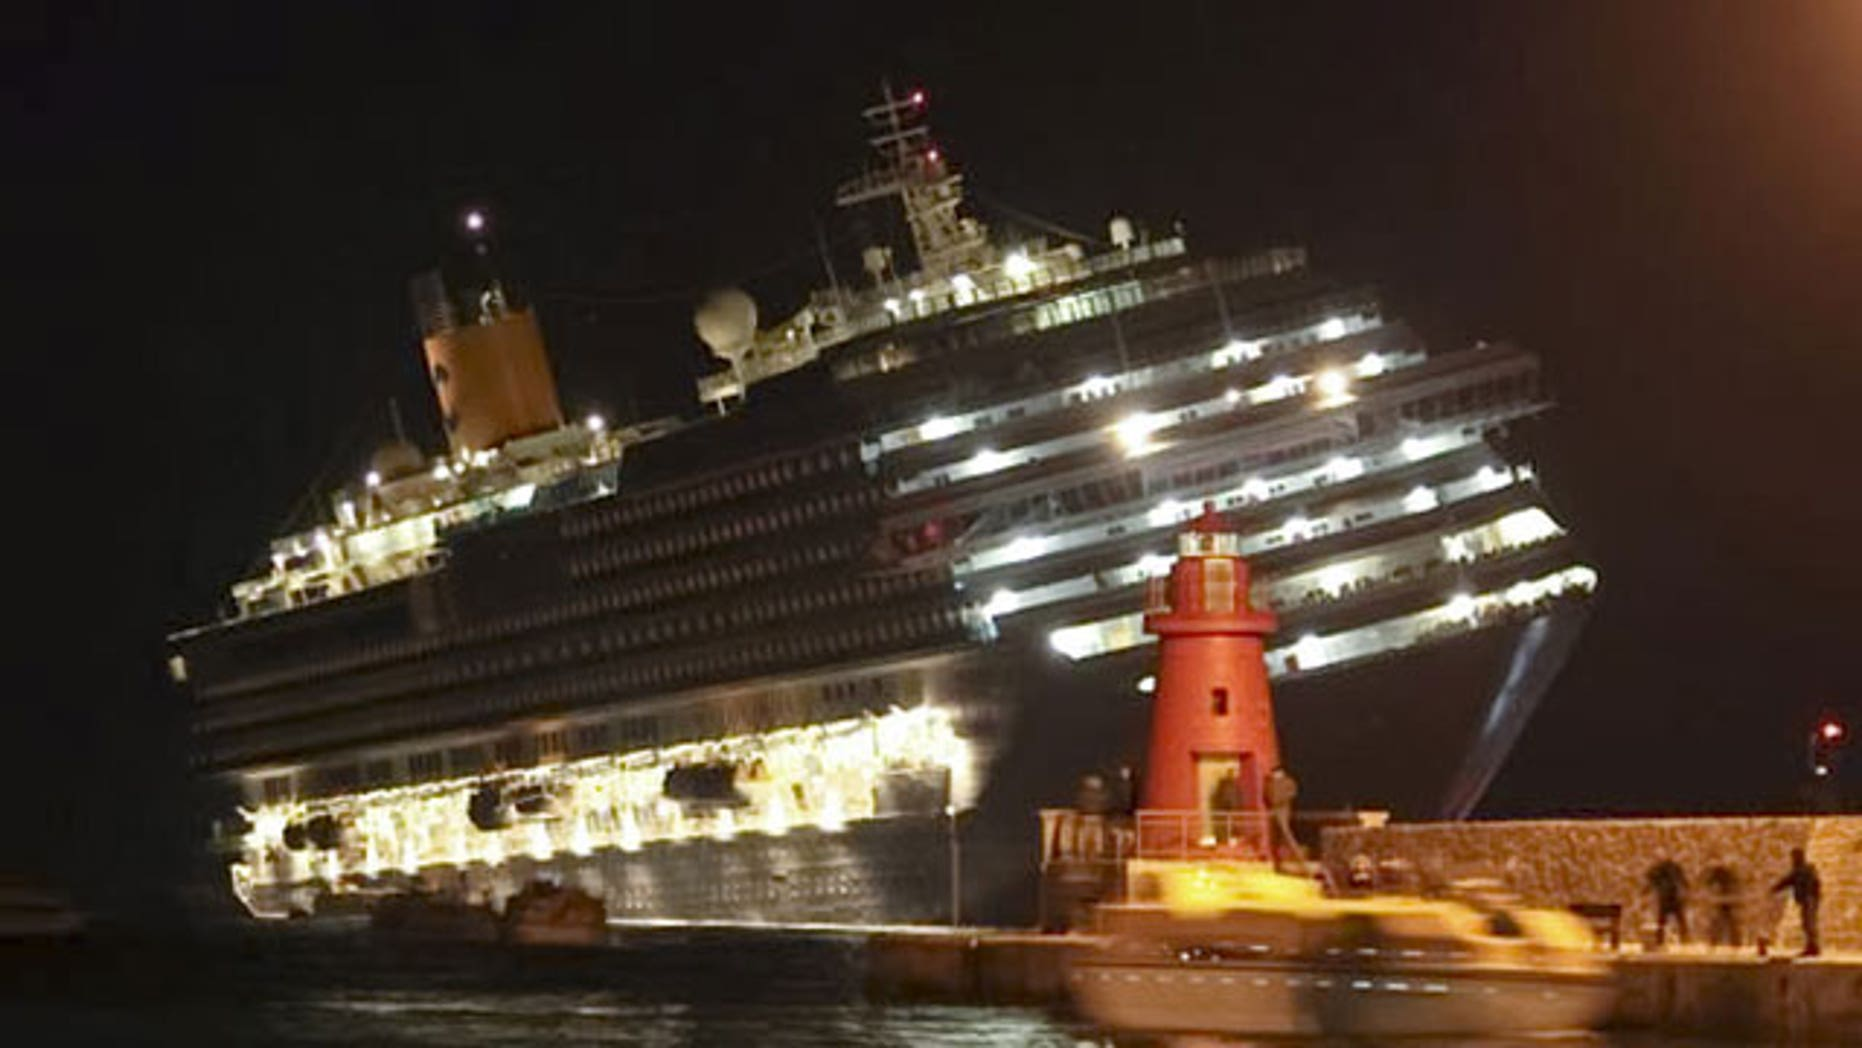 January 14, 2012: The luxury cruise ship Costa Concordia leans after it ran aground off the coast of Isola del Giglio island, Italy, gashing open the hull and forcing some 4,200 people aboard to evacuate aboard lifeboats to the nearby Isola del Giglio island.